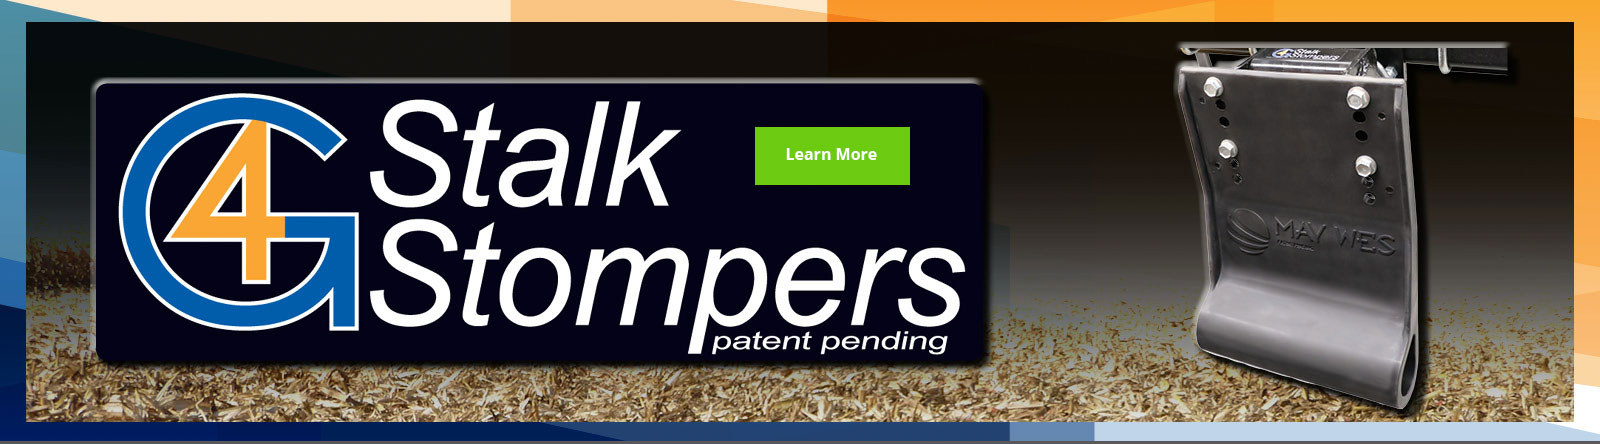 G4 Stalk Stompers - Learn More